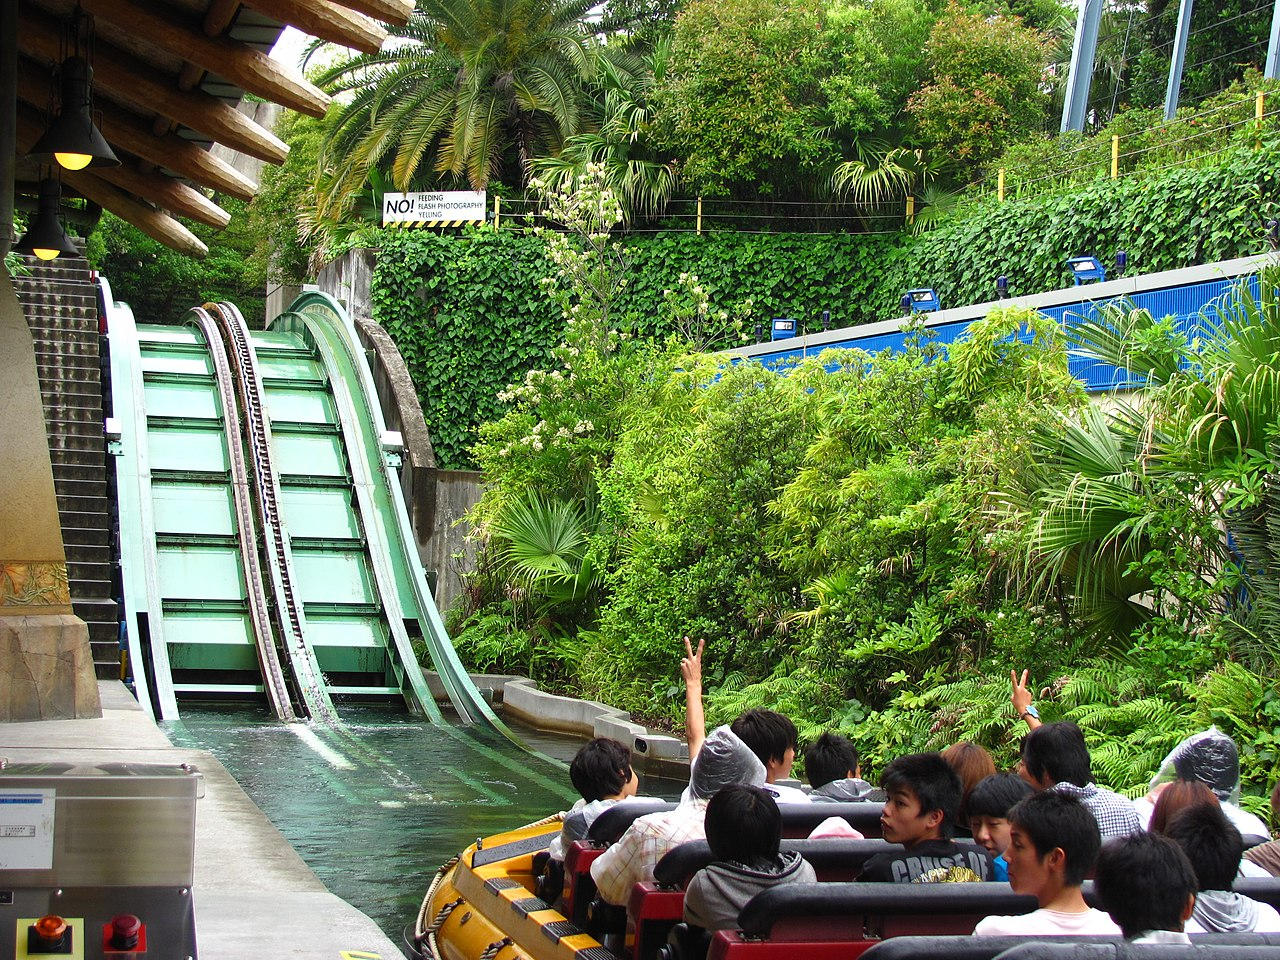 File:Jurassic Park The Ride at Universal Studios Japan 5